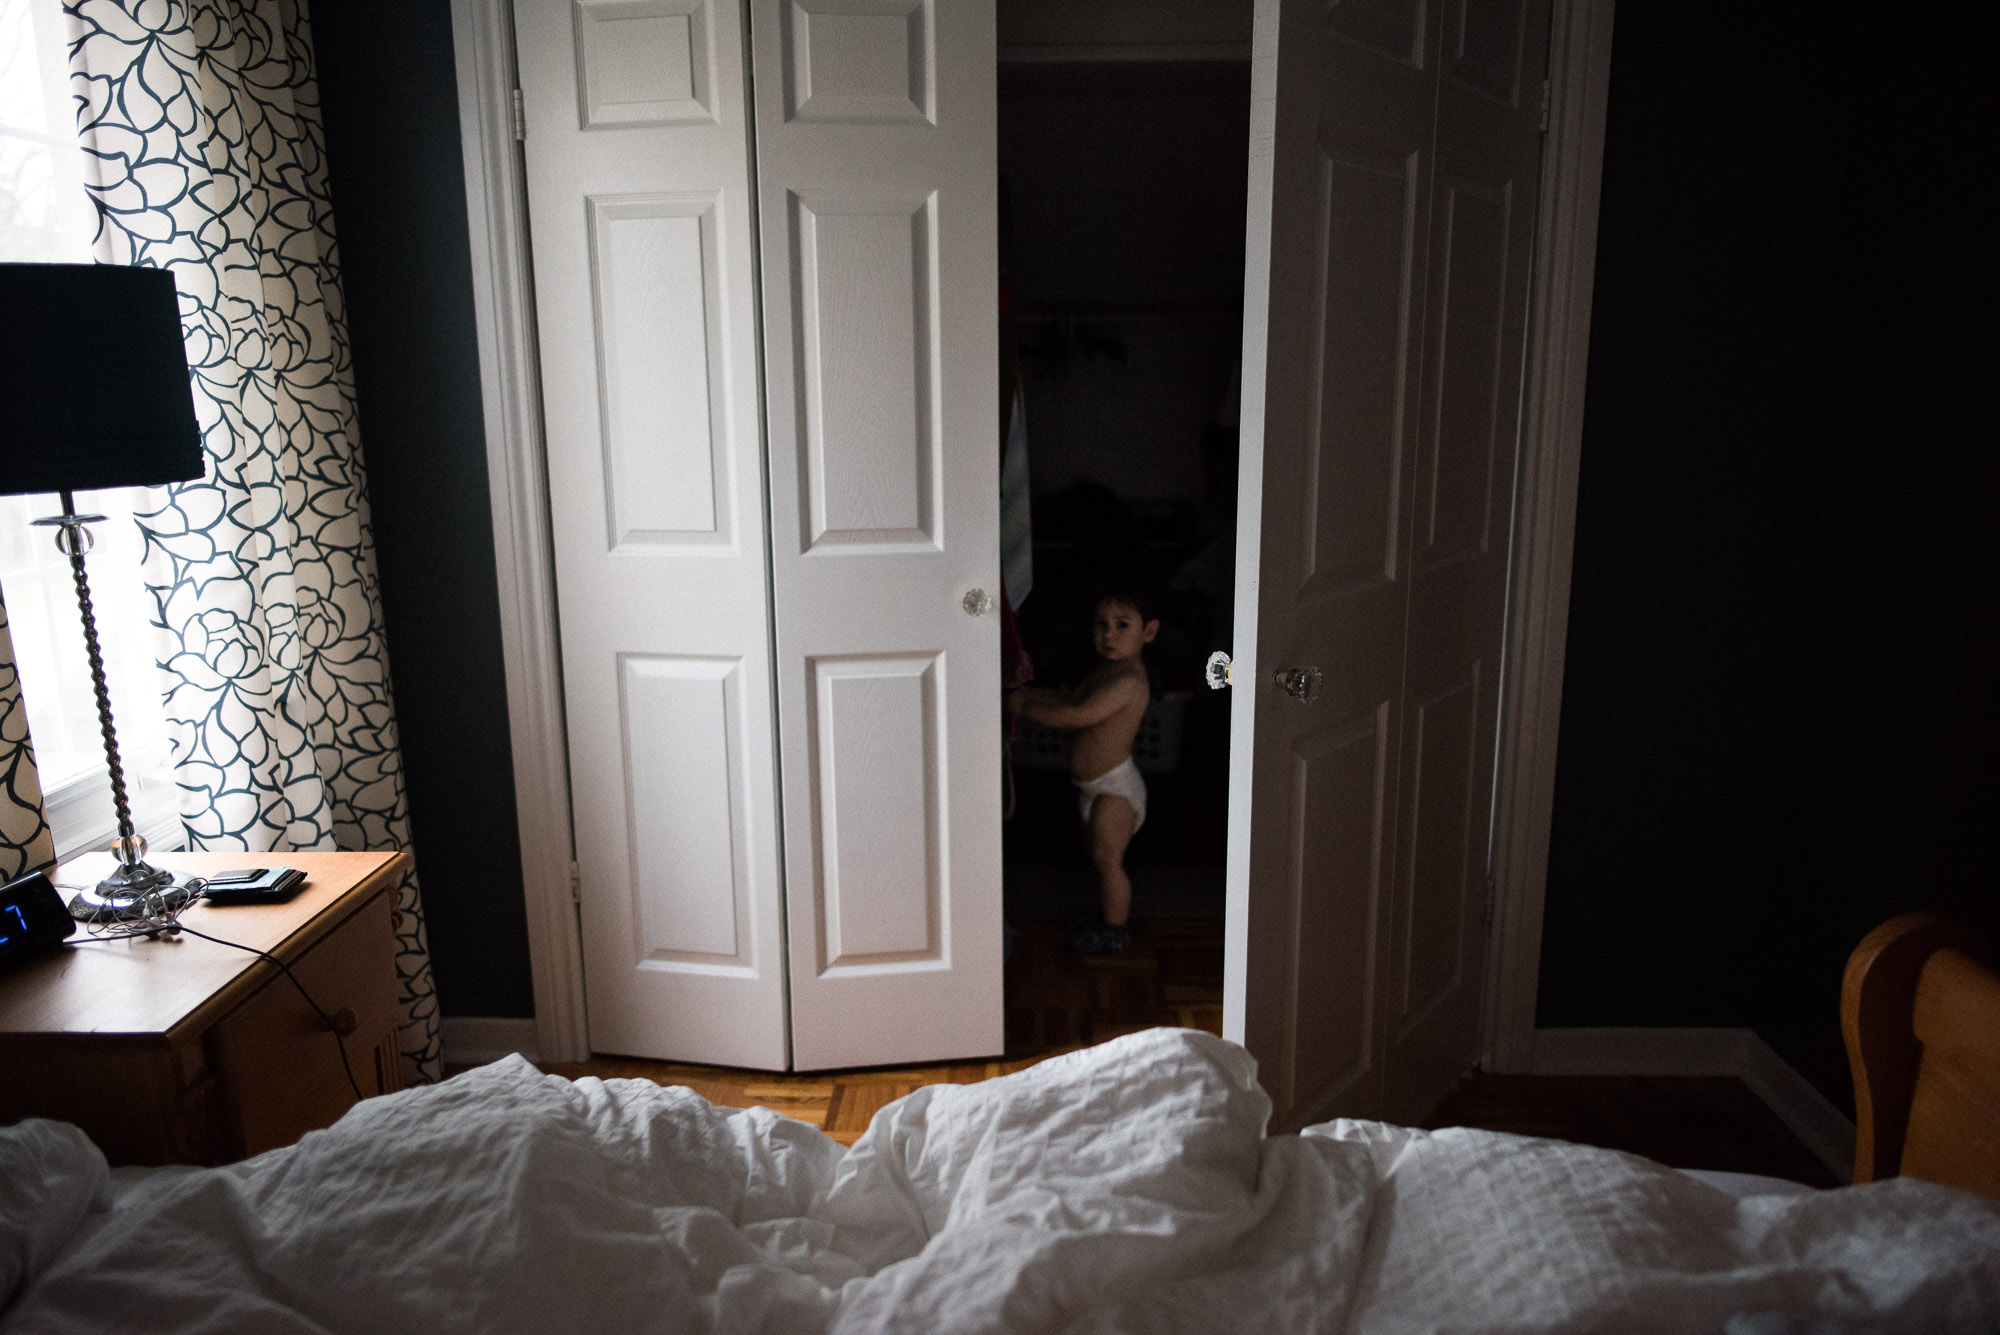 toddler with a diaper hides in a closet